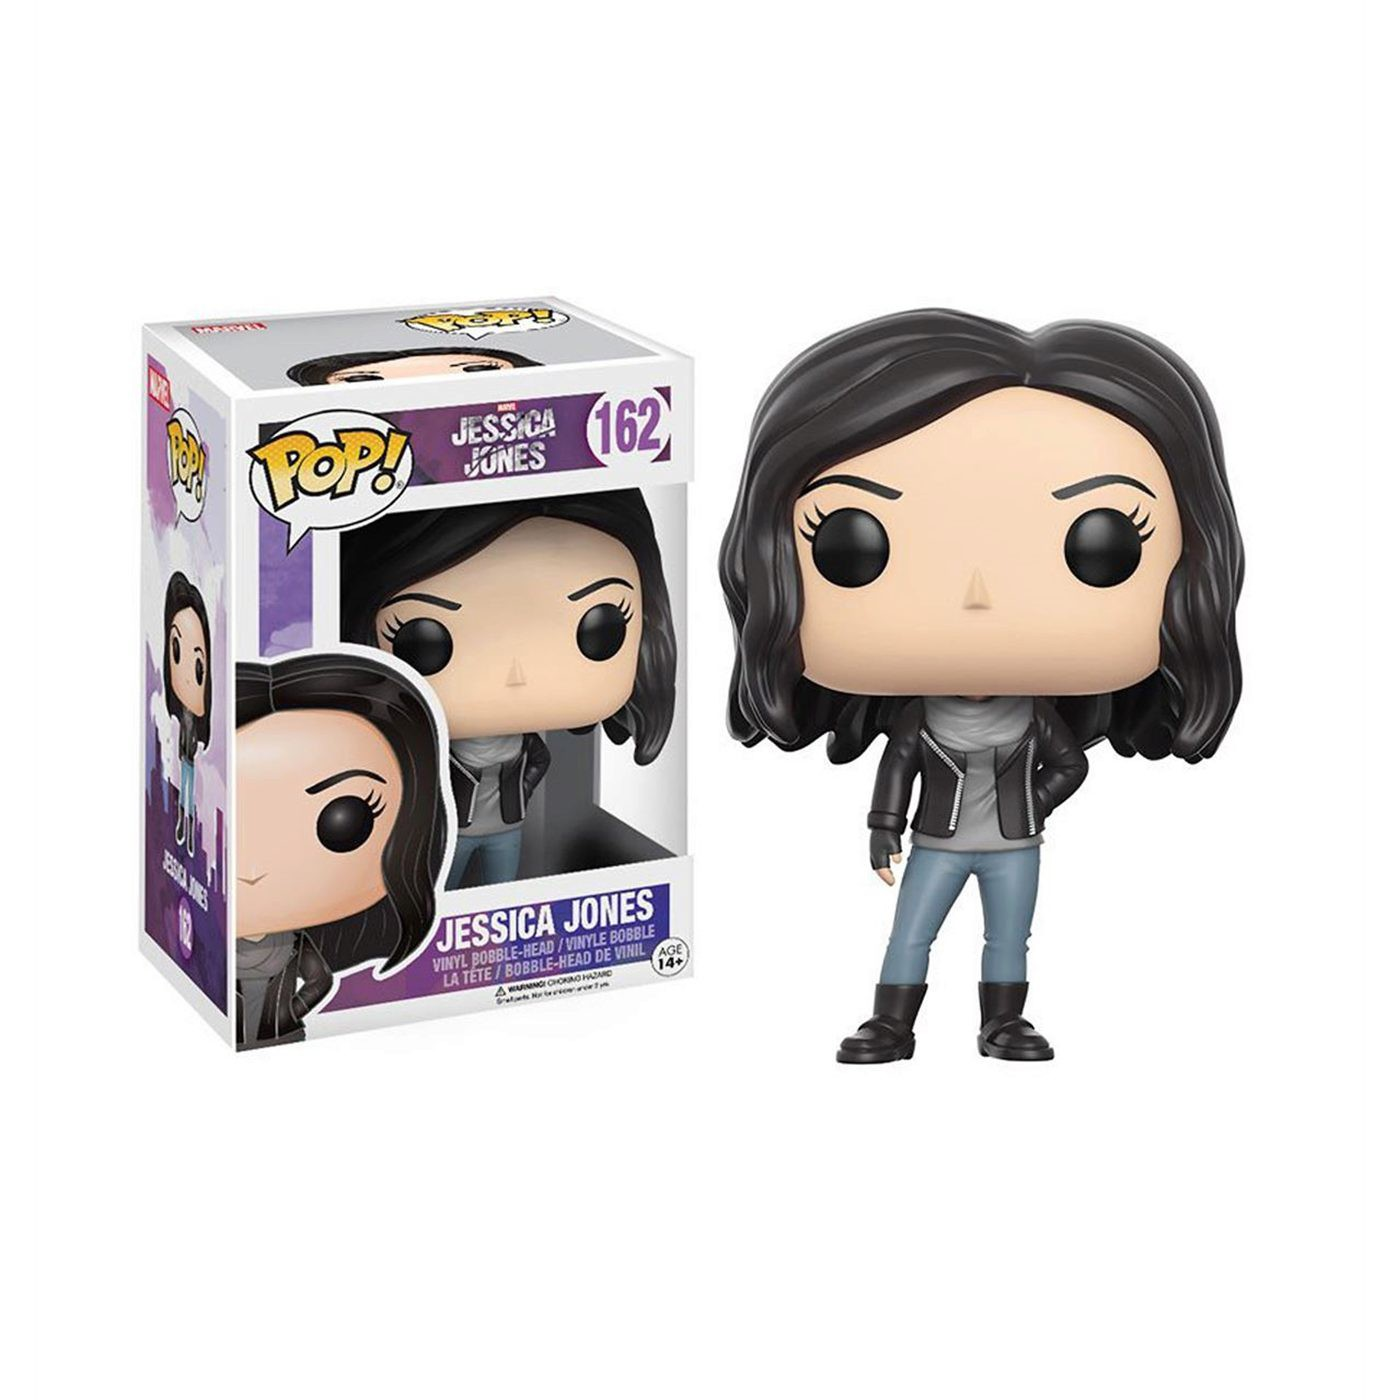 Jessica Jones Series Funko Pop Bobble Head